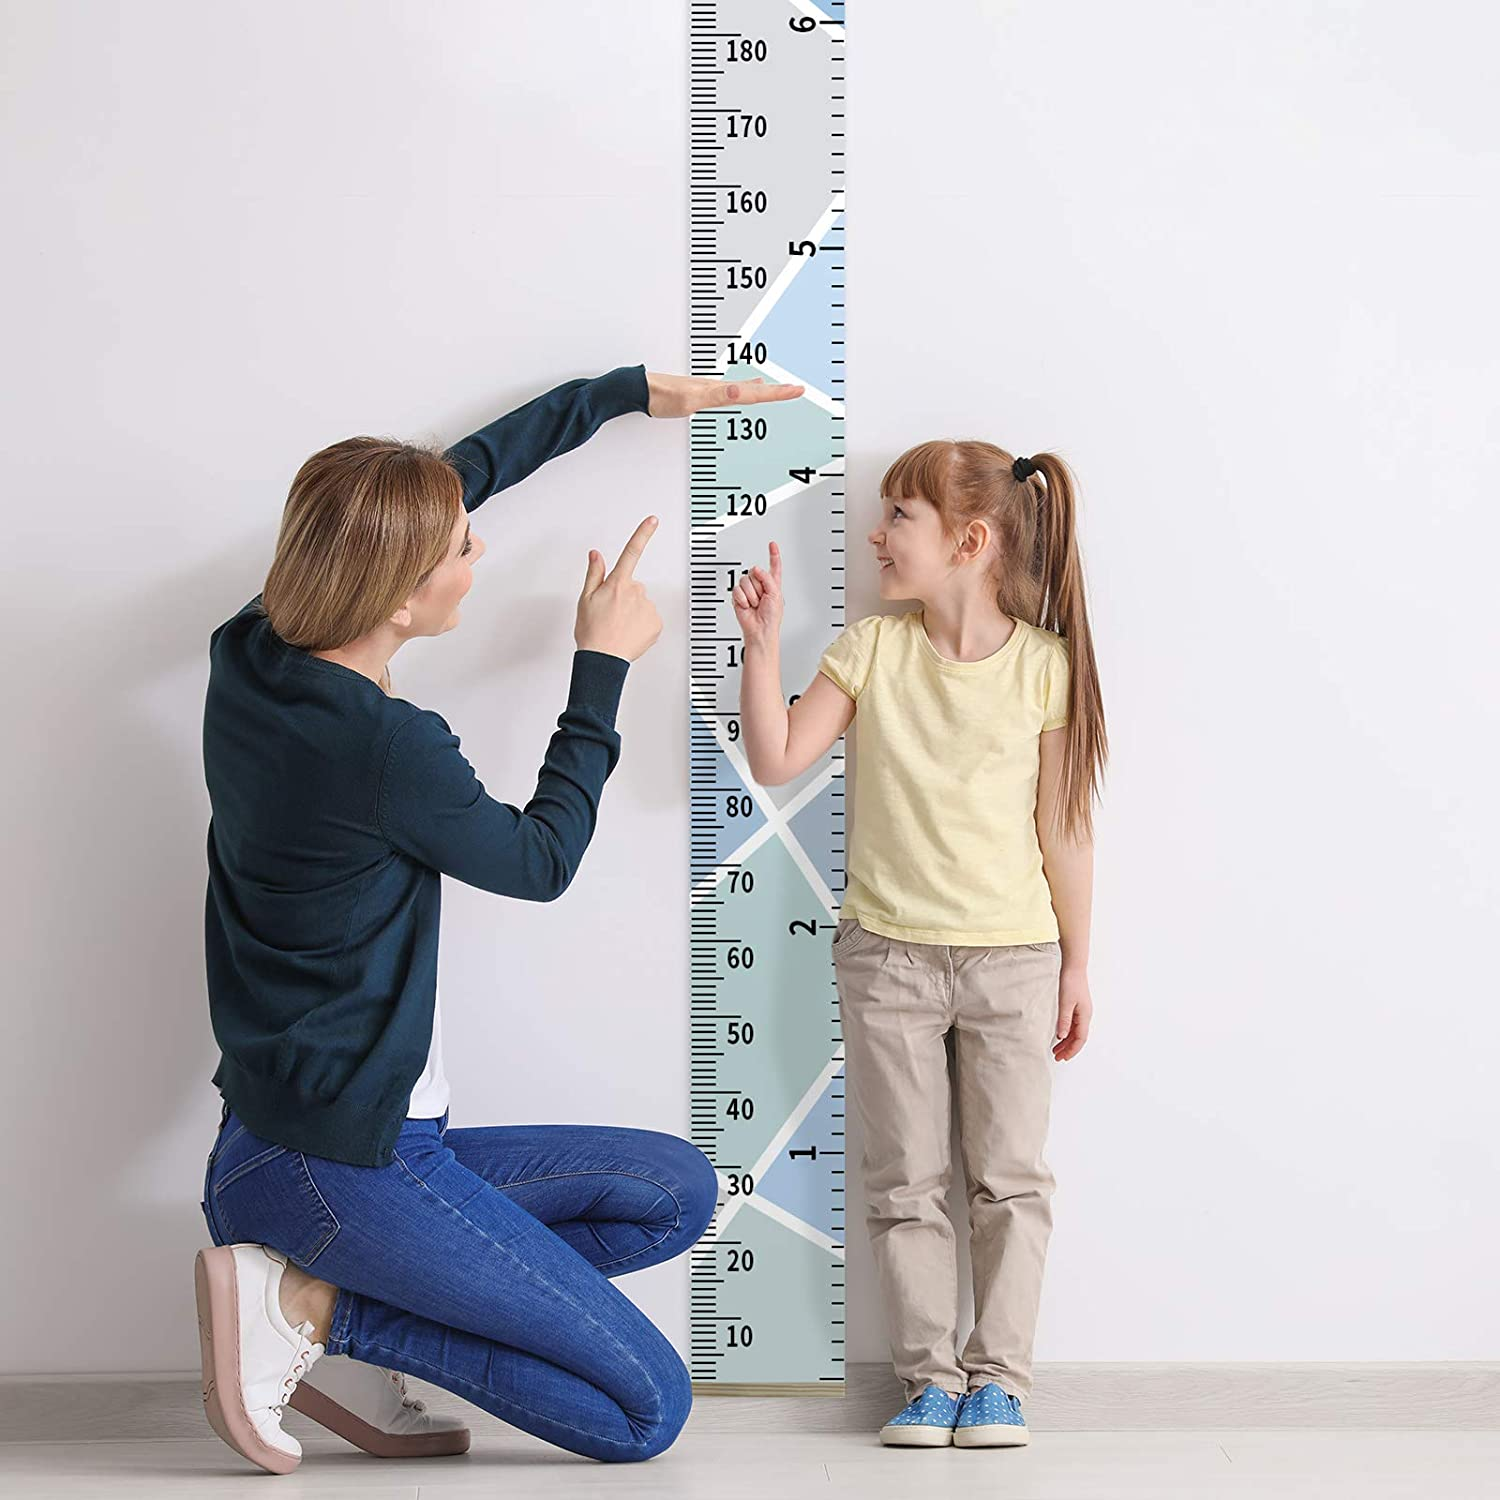 7.9 x 79 Inch Children Growth Chart Wall Hanging Ruler Boys Girls Baby Removable Canvas and Wood Measuring Ruler for Children Bedroom /& Nursery Decoration Height Chart for Kids